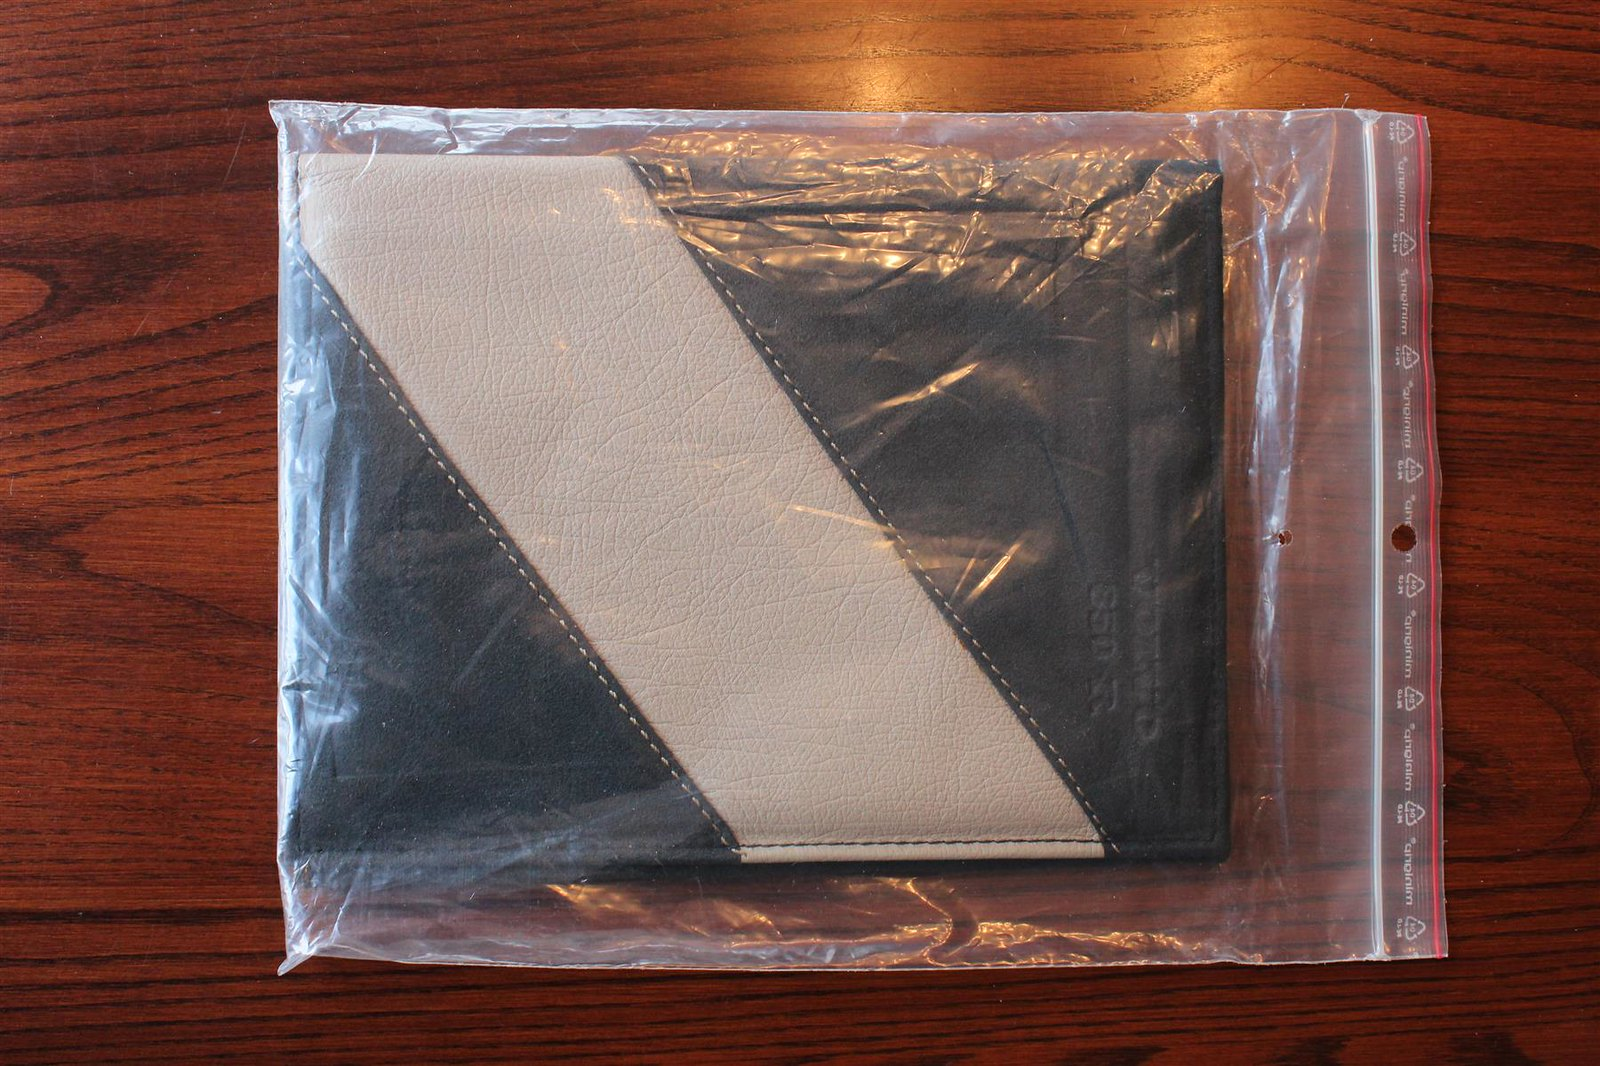 Weaver Brothers Volvo 850r 855r Leather Alcantara Owners Manual Case How Many Have These